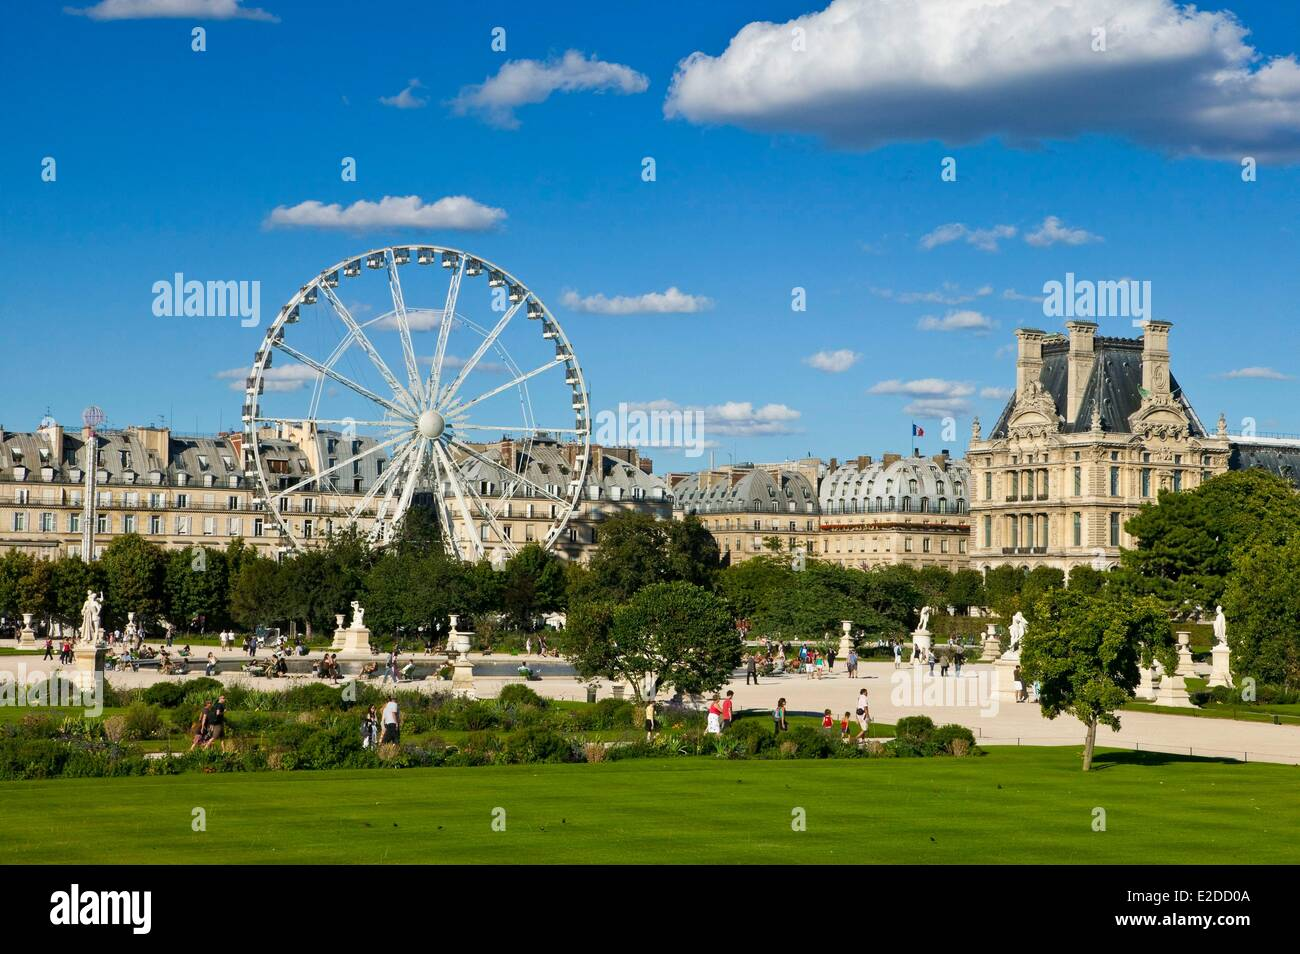 france paris the jardin des tuileries and the ferris wheel stock photo royalty free image. Black Bedroom Furniture Sets. Home Design Ideas